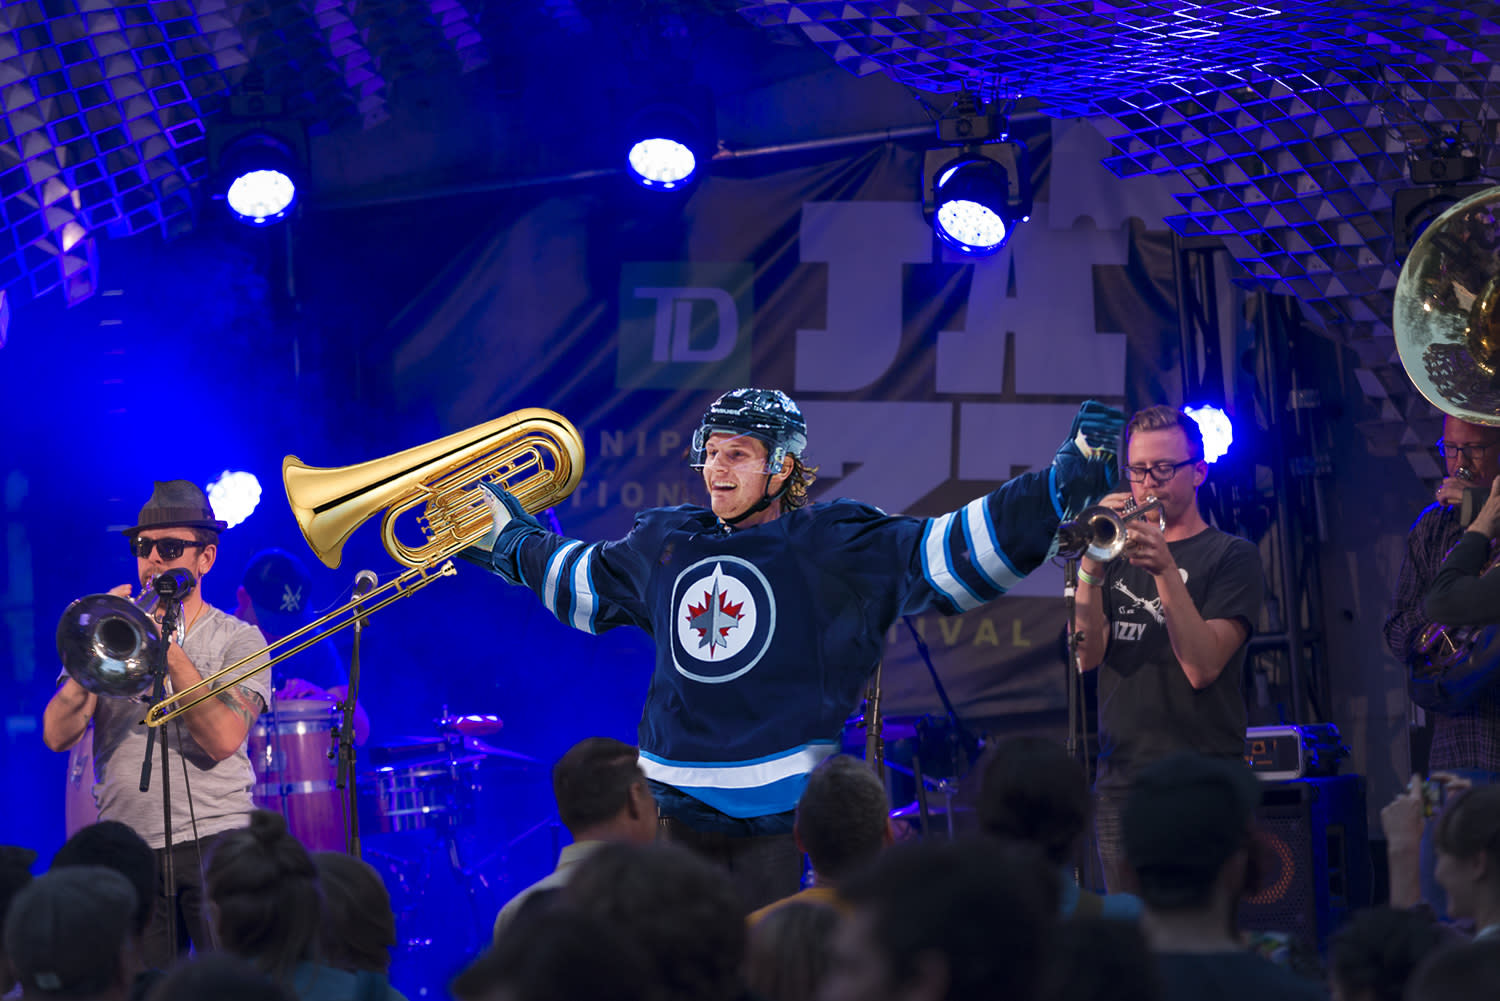 Jacob Trouba as a performer at the Jazz Festival